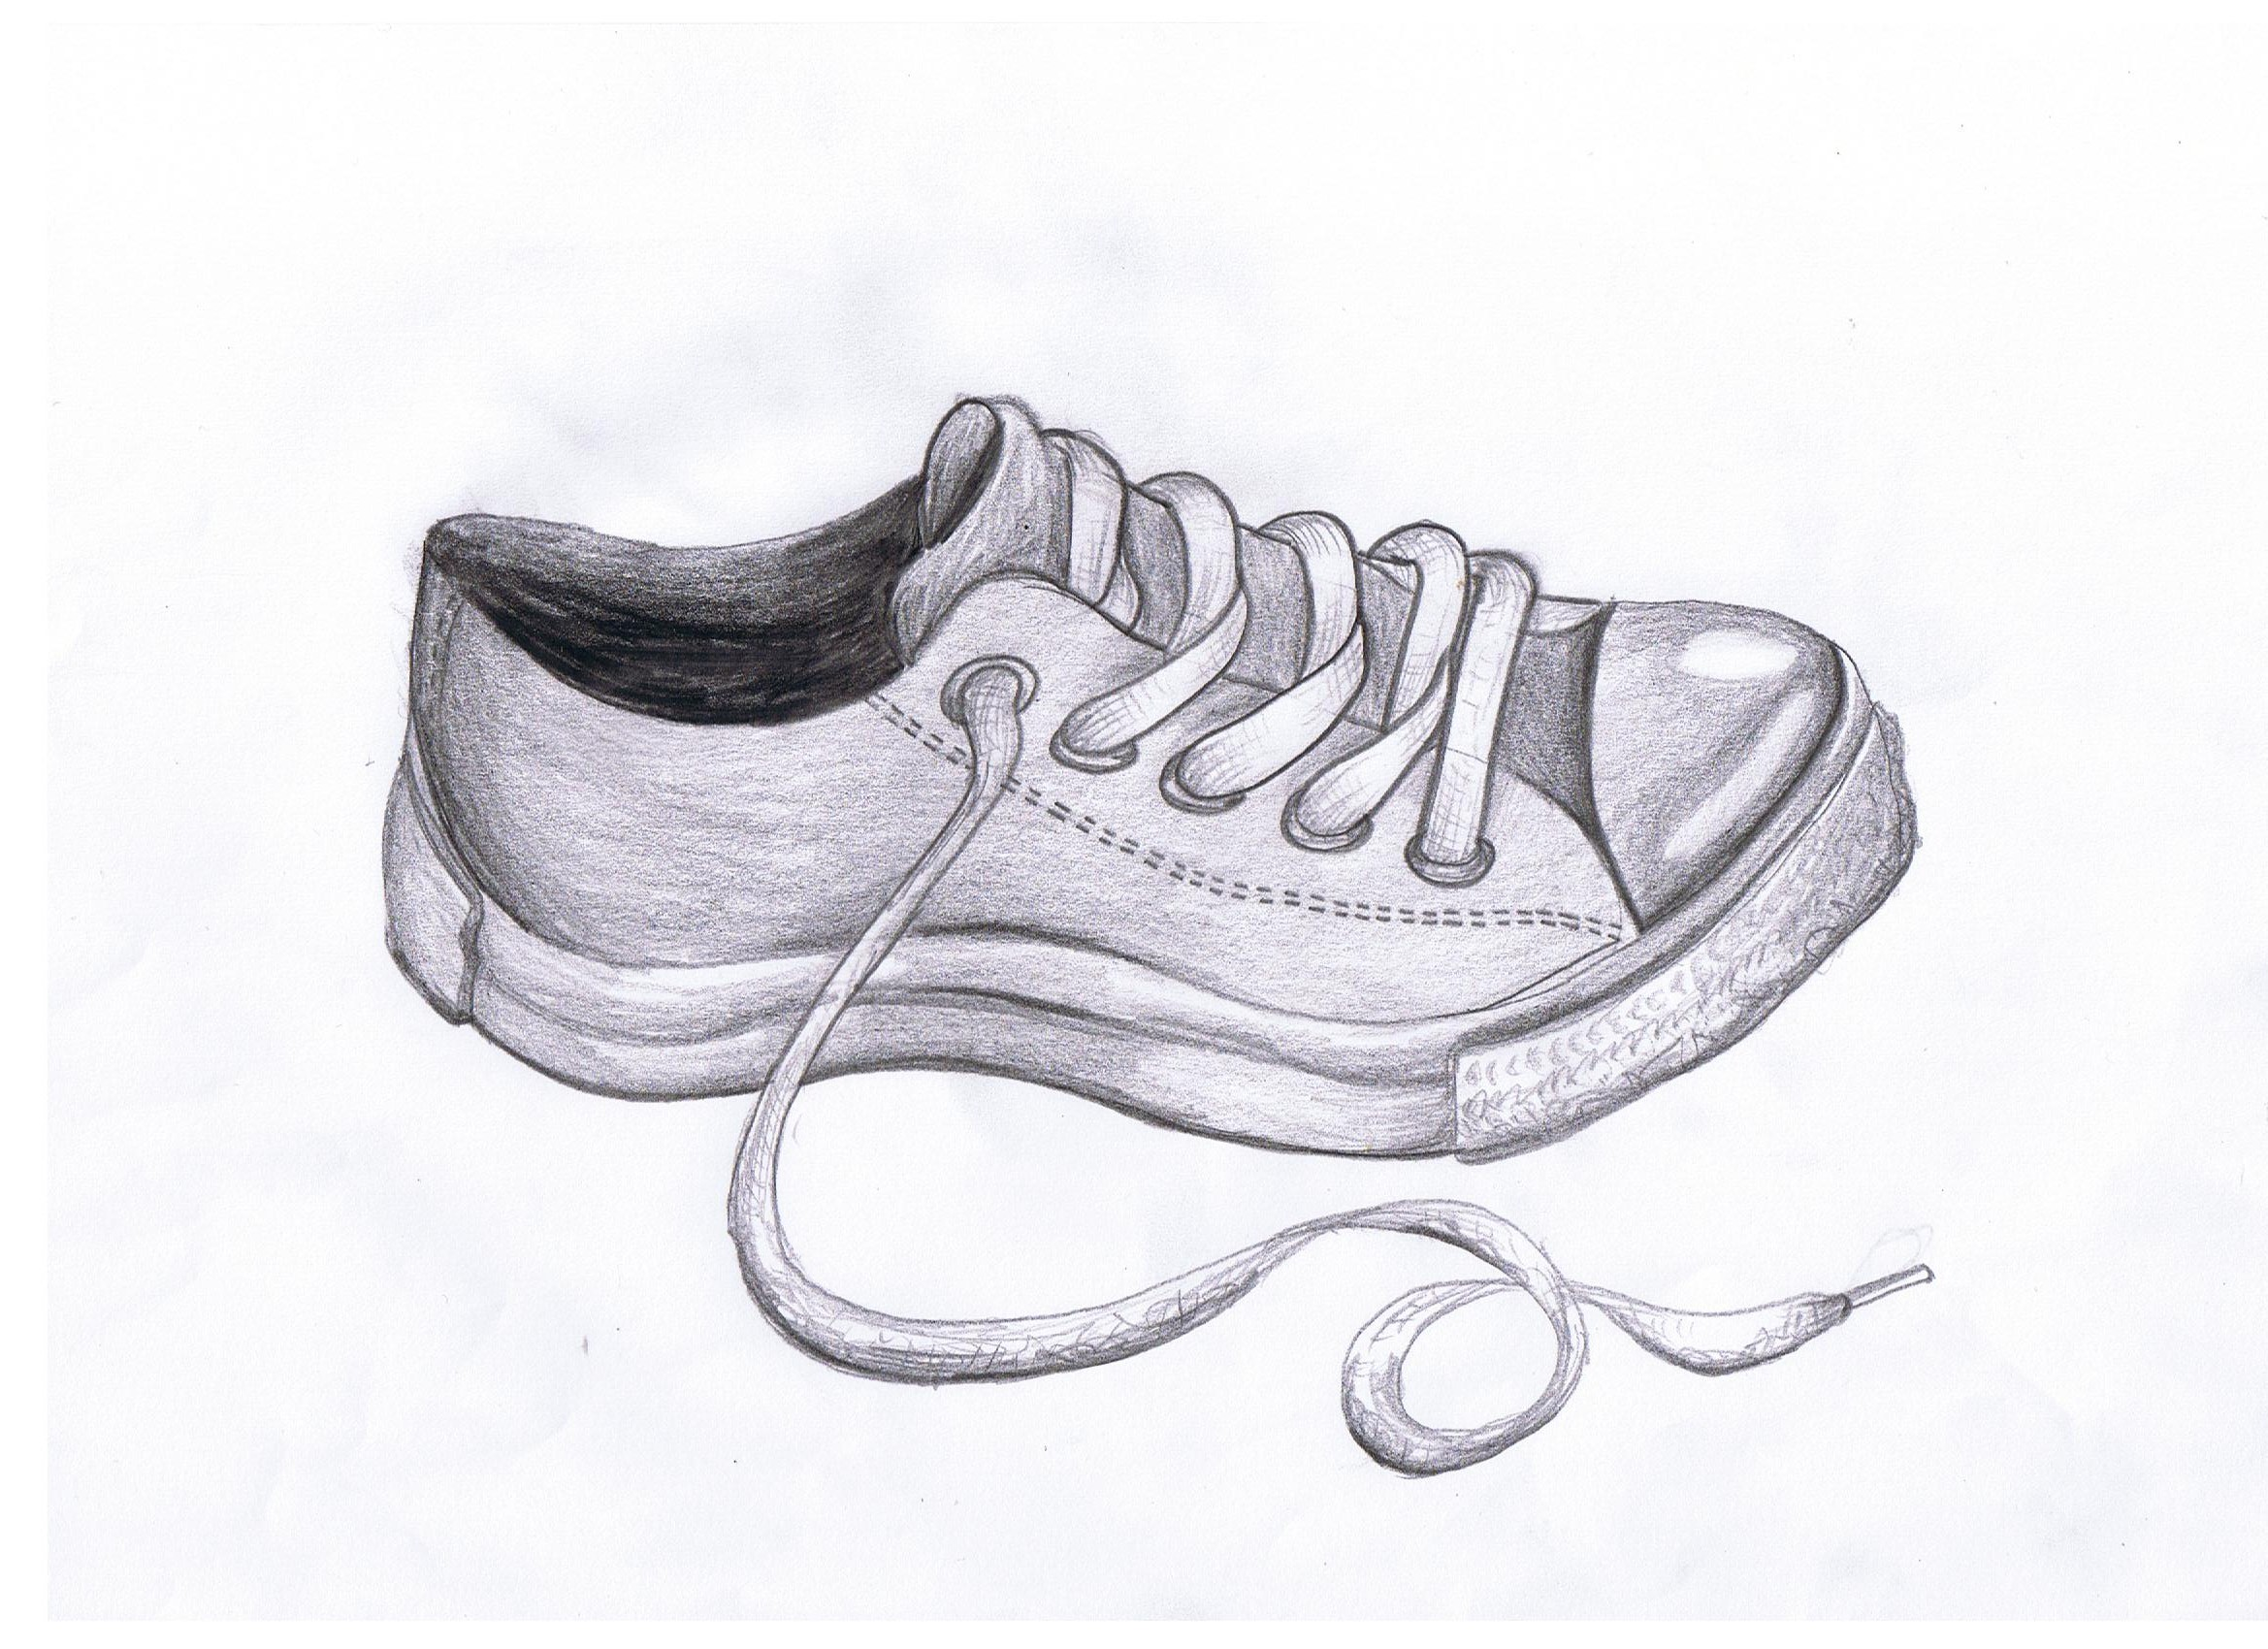 Drawn shoe charcoal Shoe Converse Pinterest drawing shoe